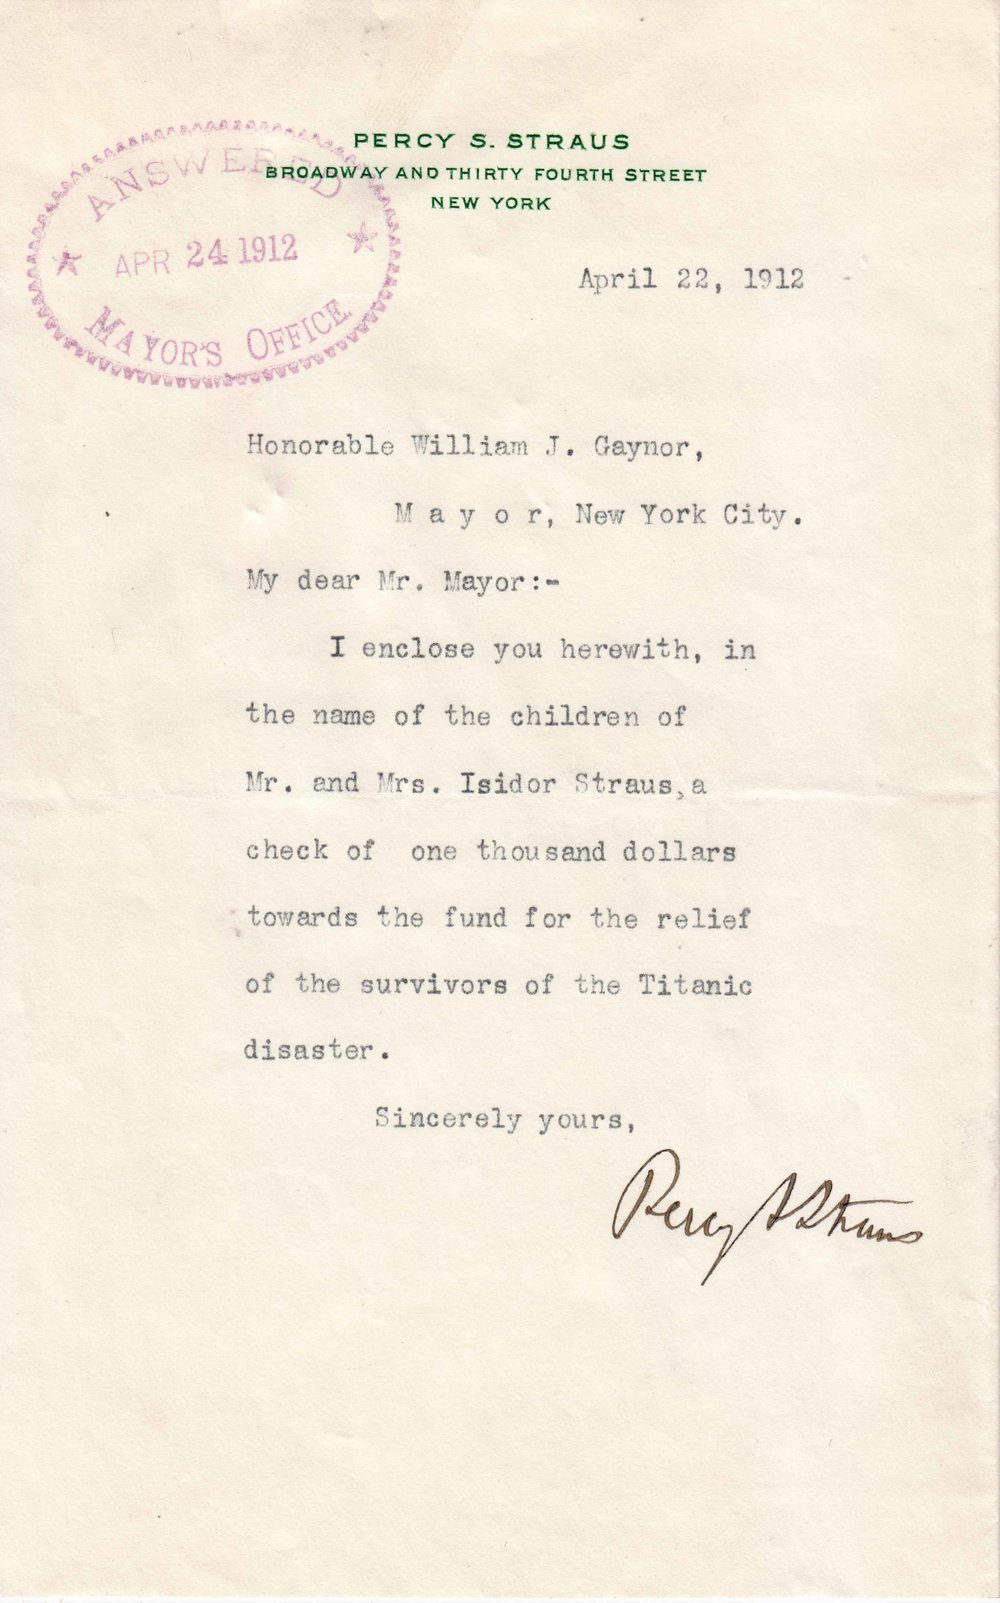 Letter from Percy Straus to Mayor William J. Gaynor, April 22, 1912. Percy Straus was the brother of Isidor Straus, who died on the Titanic. Mayor Gaynor Subject Files-Contributions and Acknowledgements – S, roll 11, NYC Municipal Archives.